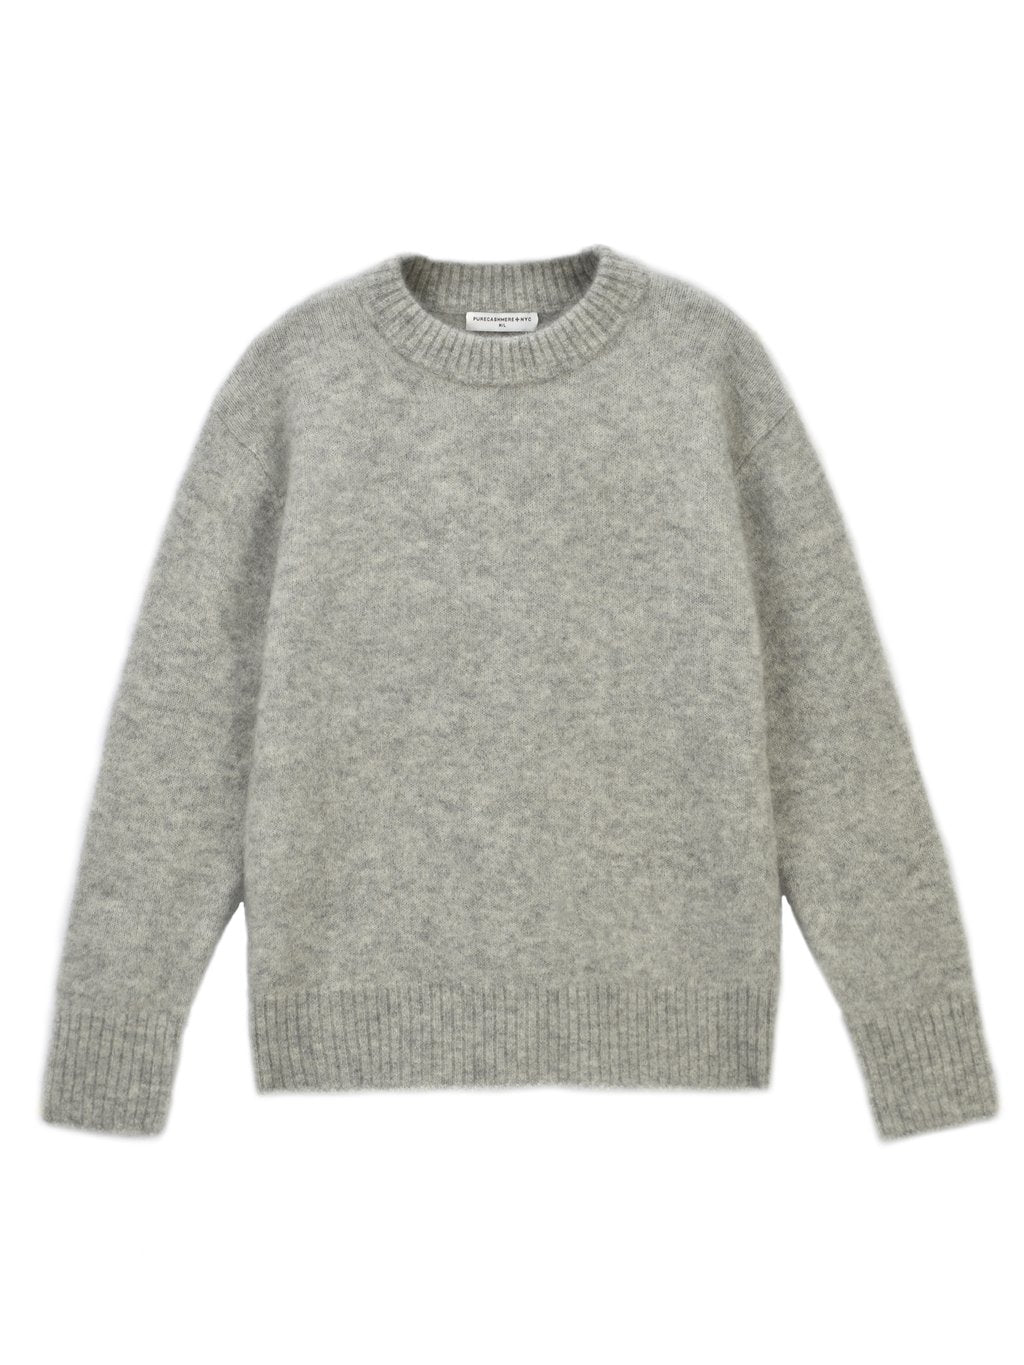 OVERSIZE MOHAIR SWEATER - LIGHT GREY